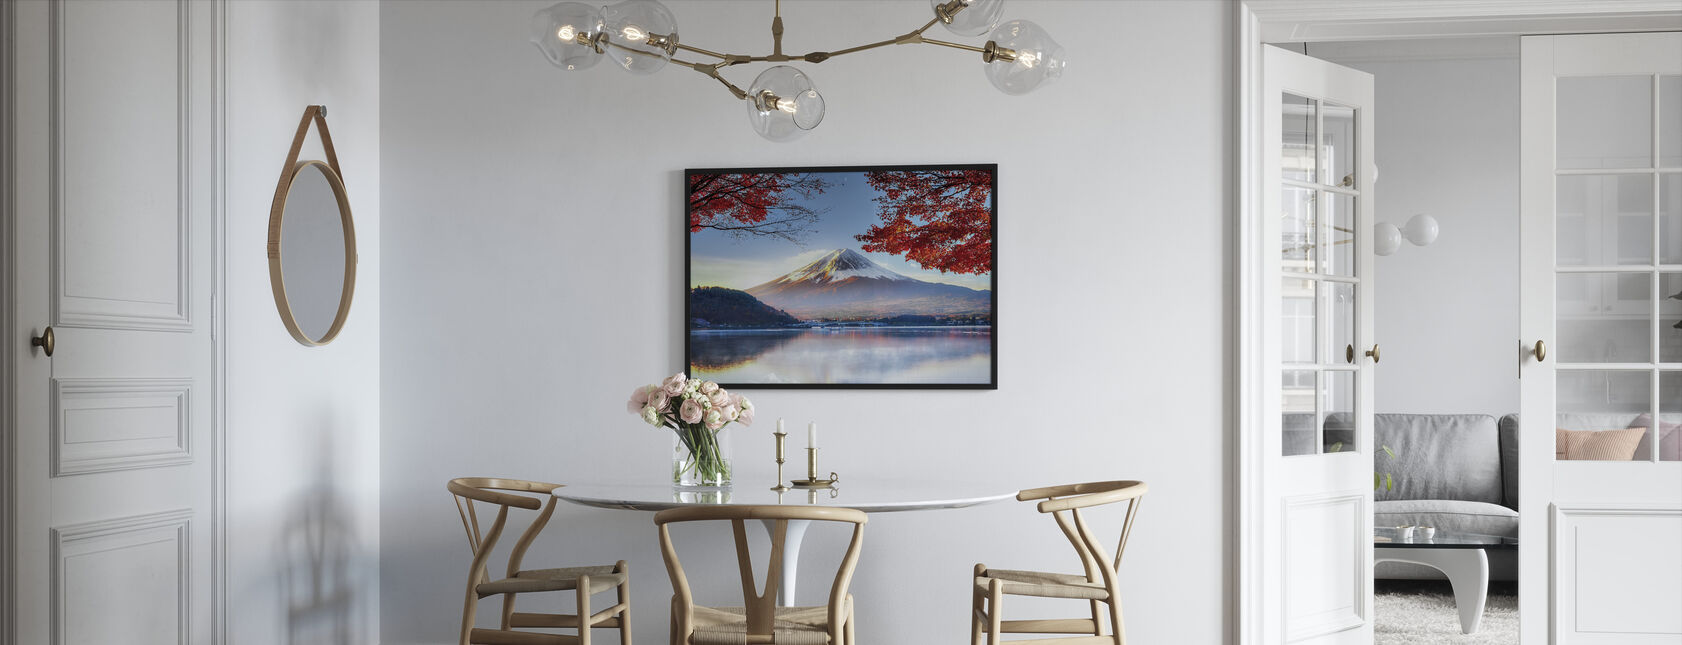 Fuji Mountain in Autumn - Framed print - Kitchen